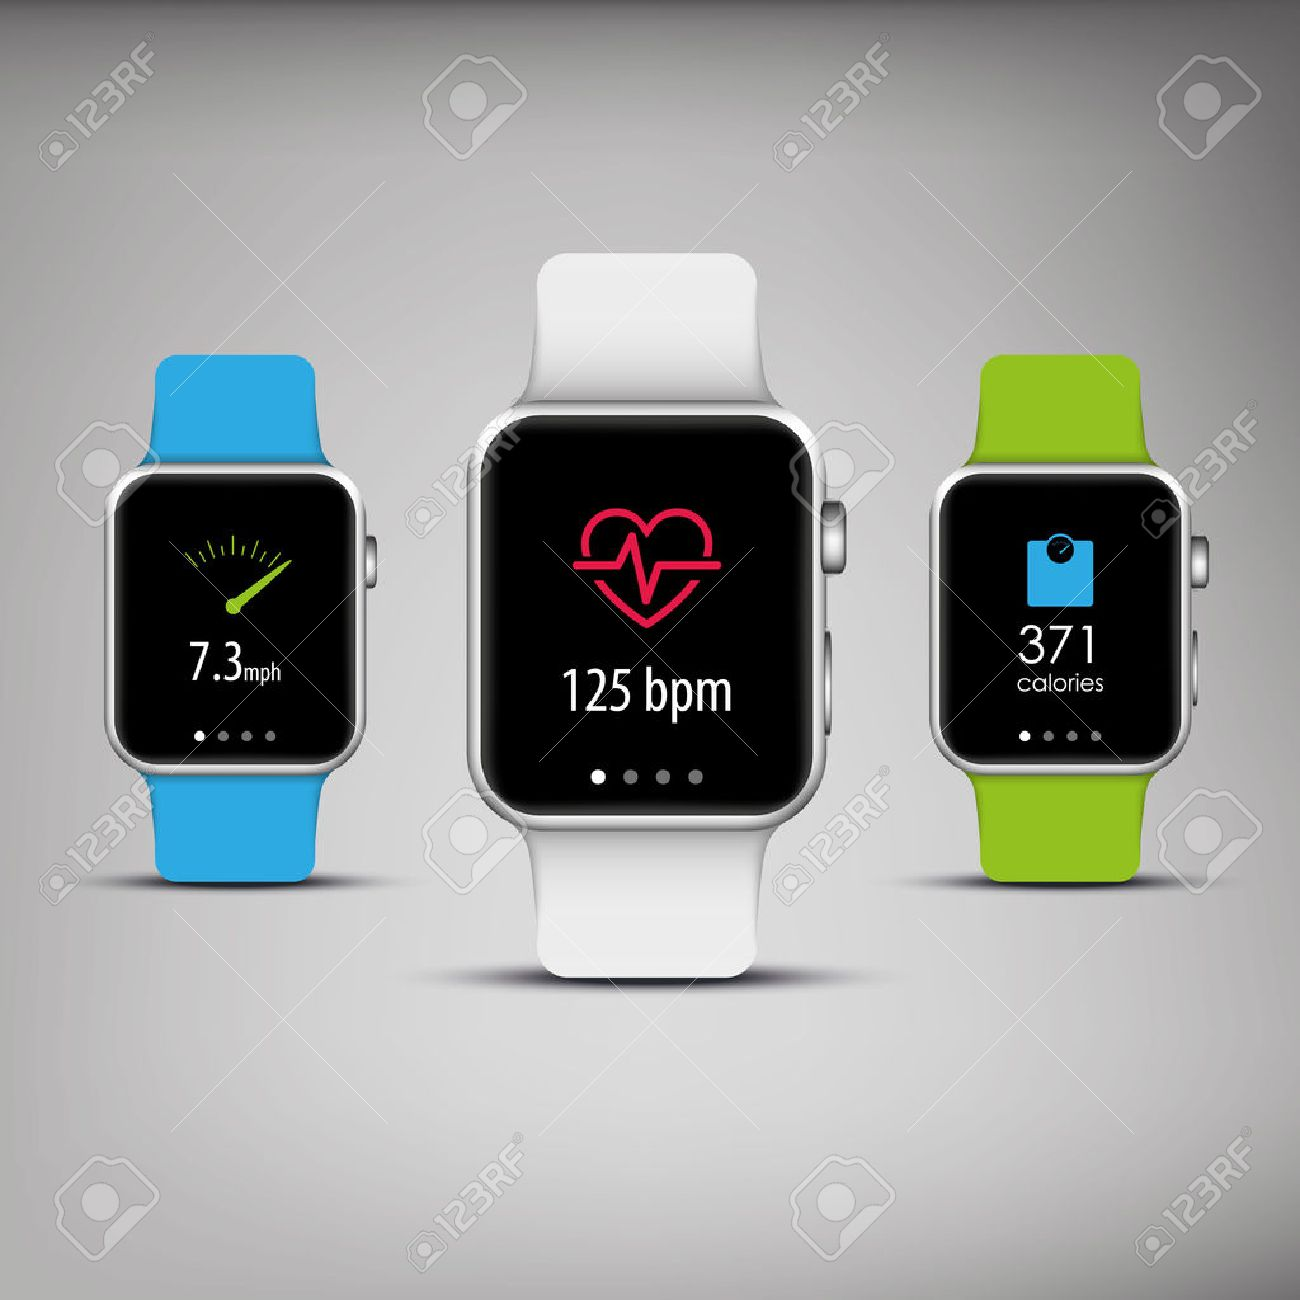 fitness tracker in elegant design with colorful bands and apps